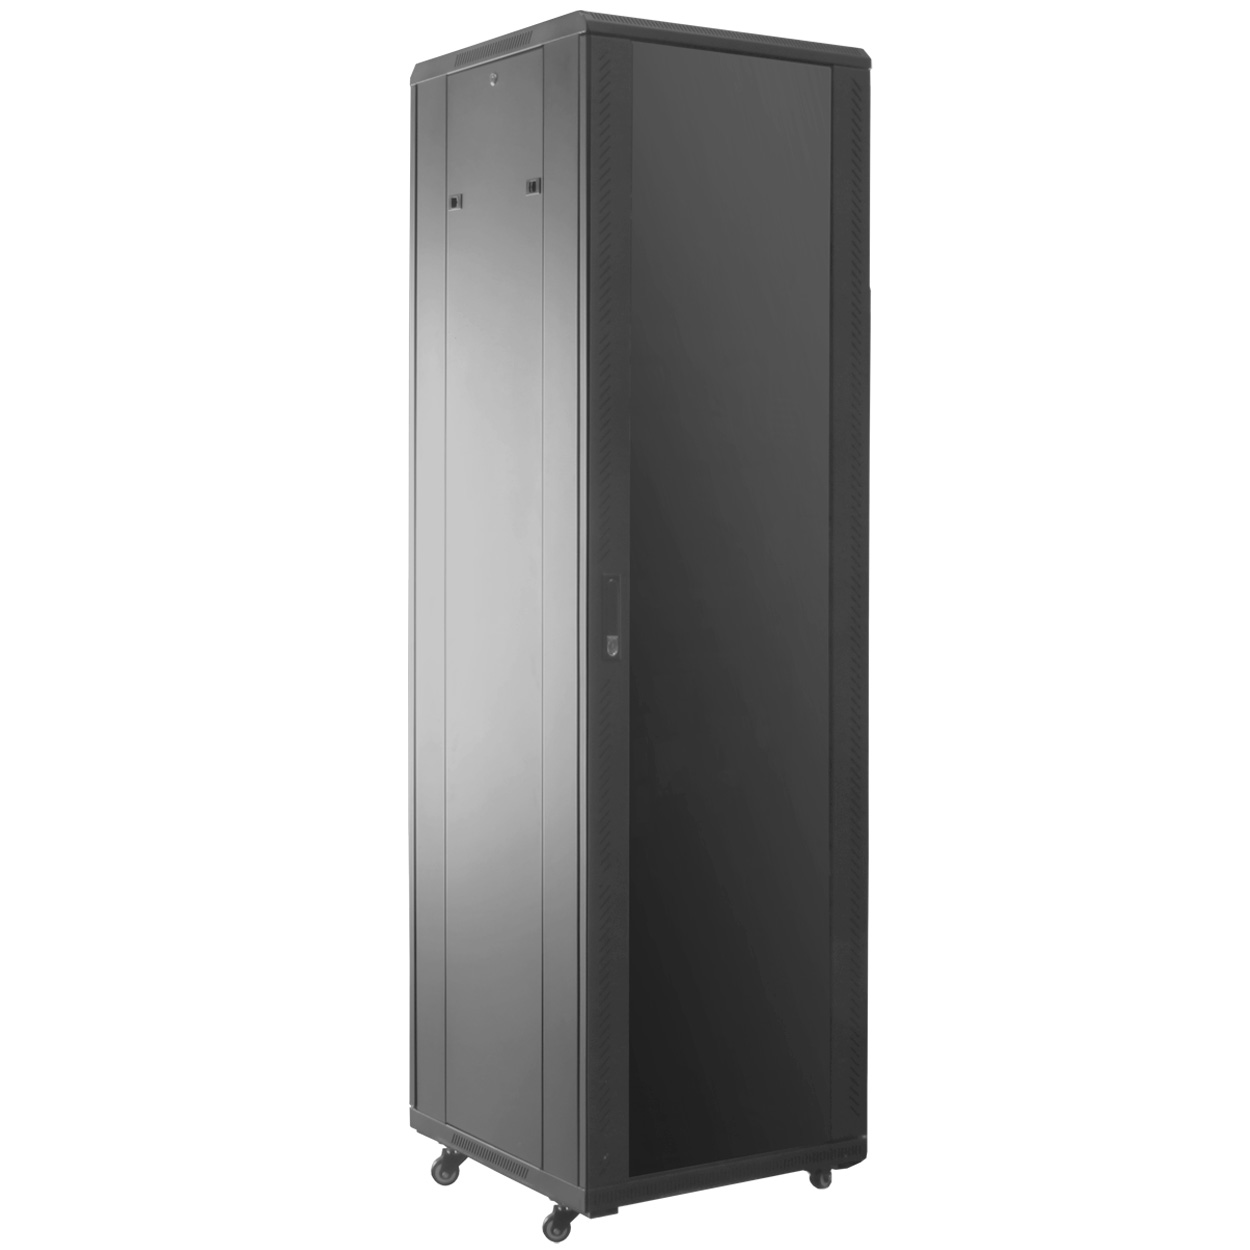 42U Rack Server Cabinet w/ Glass Door, 23.6